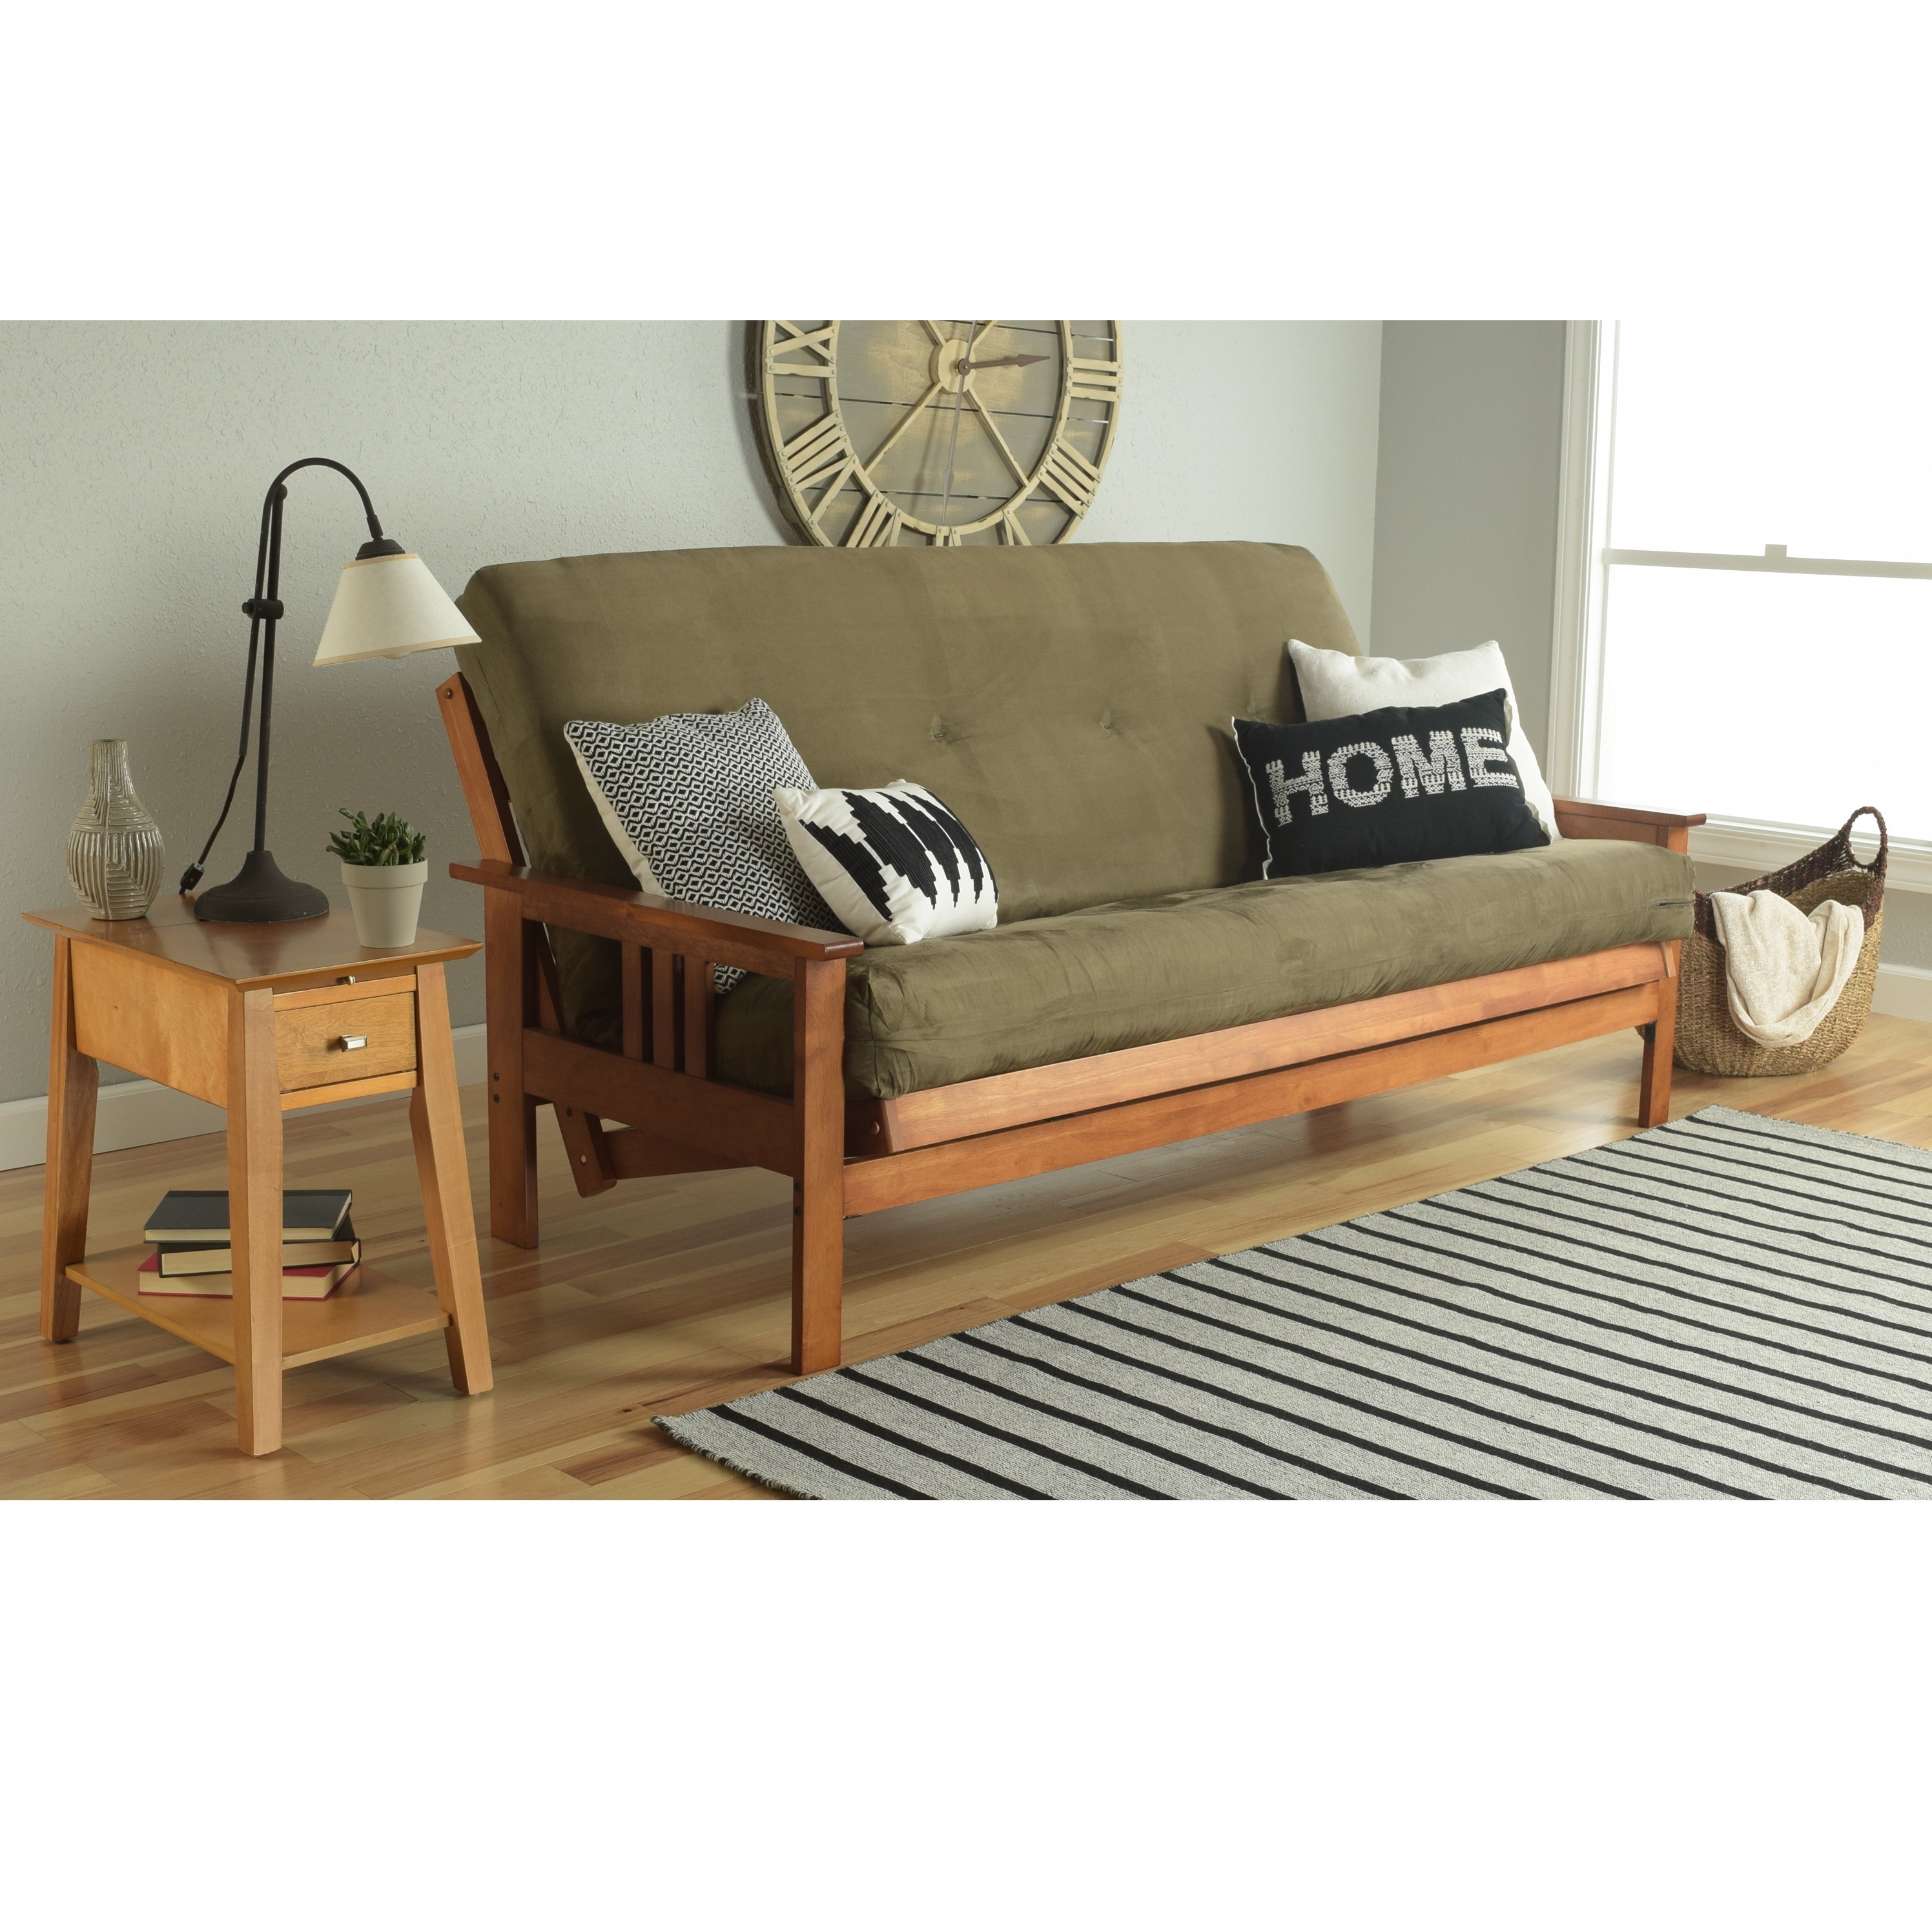 awesome international futon size designs from the delivery of next lovely room store porter day ideas full sofa beds living orange naomi worldstores steens sitswell